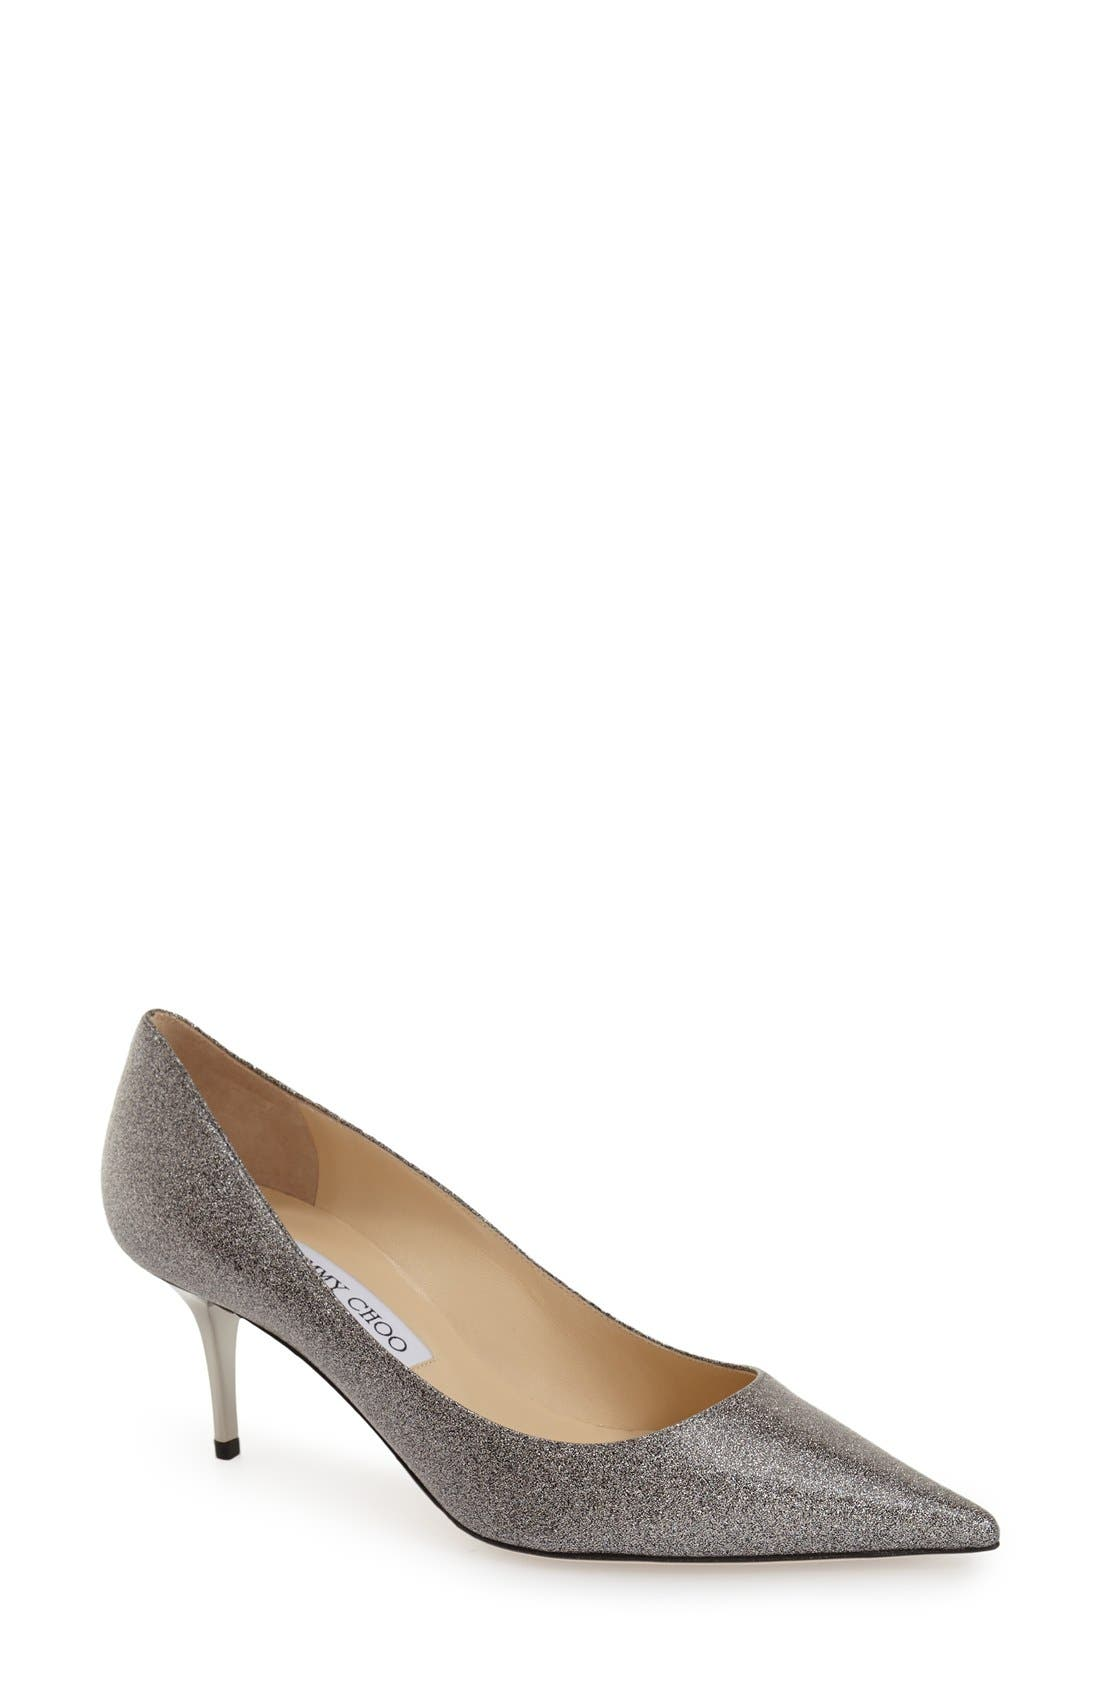 Alternate Image 1 Selected - Jimmy Choo 'Aurora' Pump